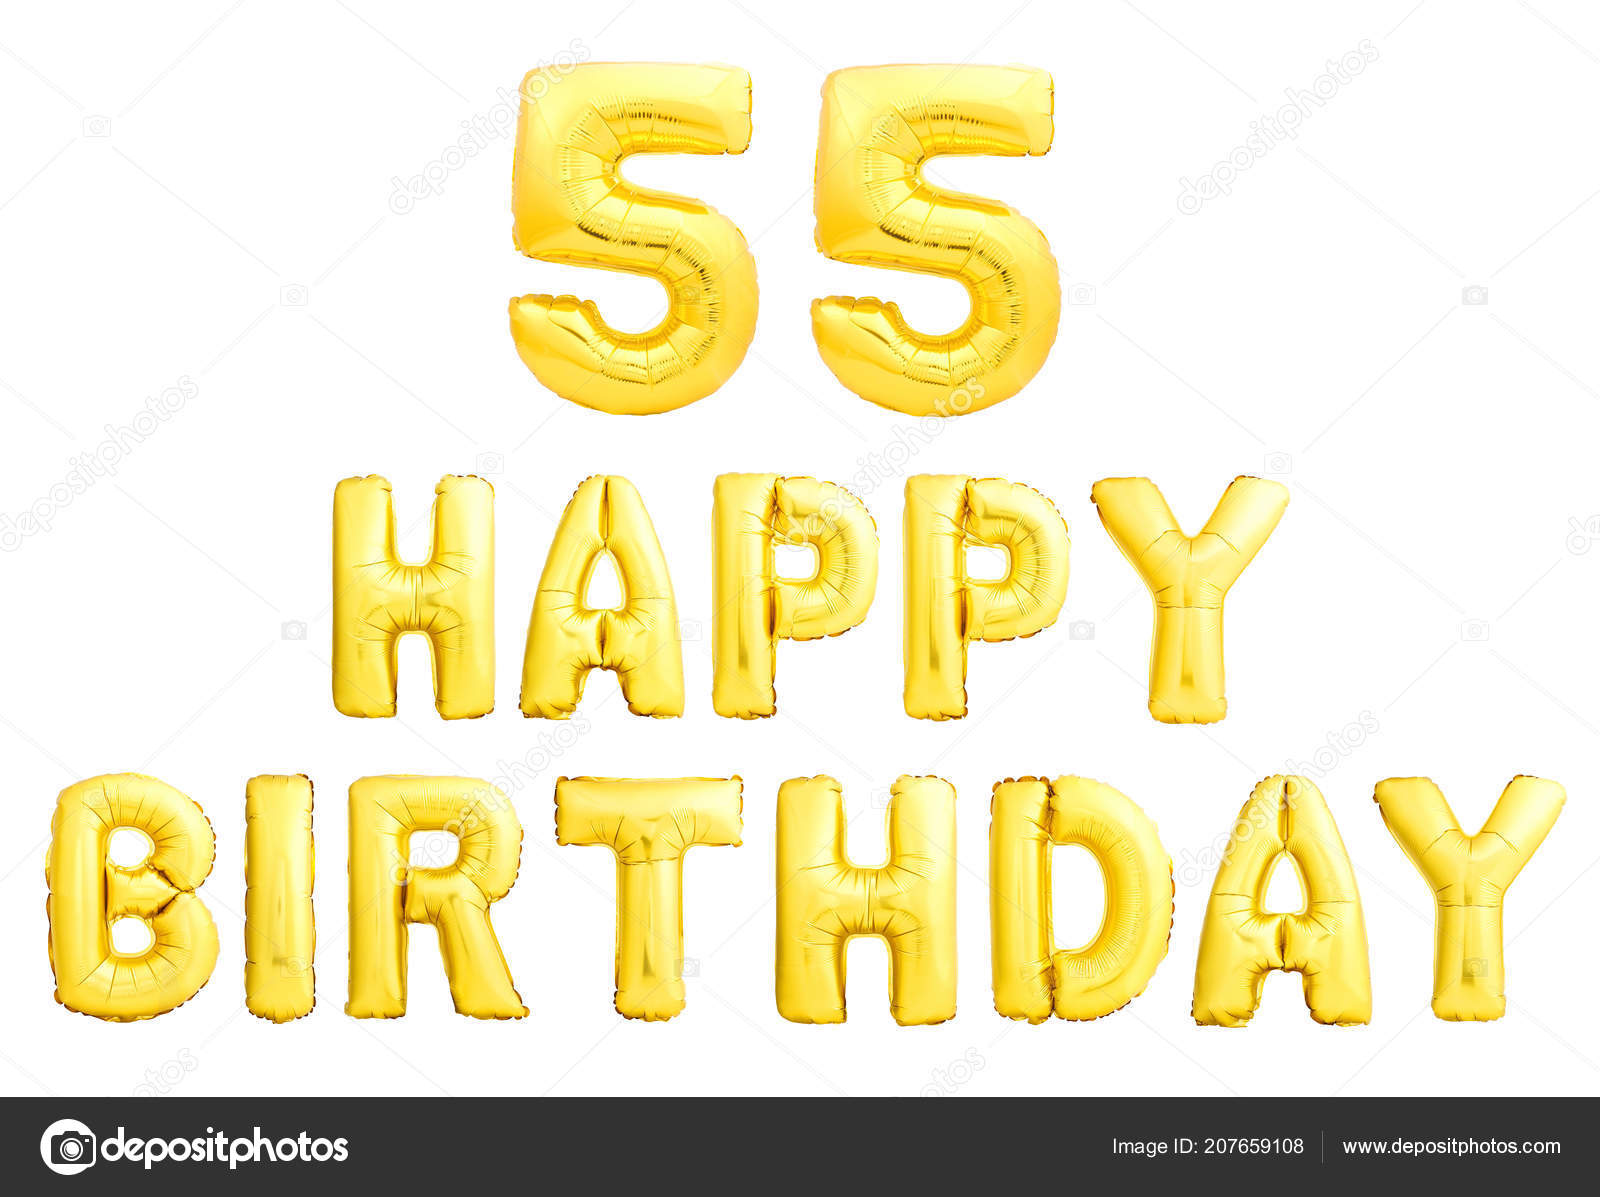 Happy Birthday 55 Years Golden Inflatable Balloons Isolated On White Background 55th Anniversary Celebration Photo By DmitryZimin